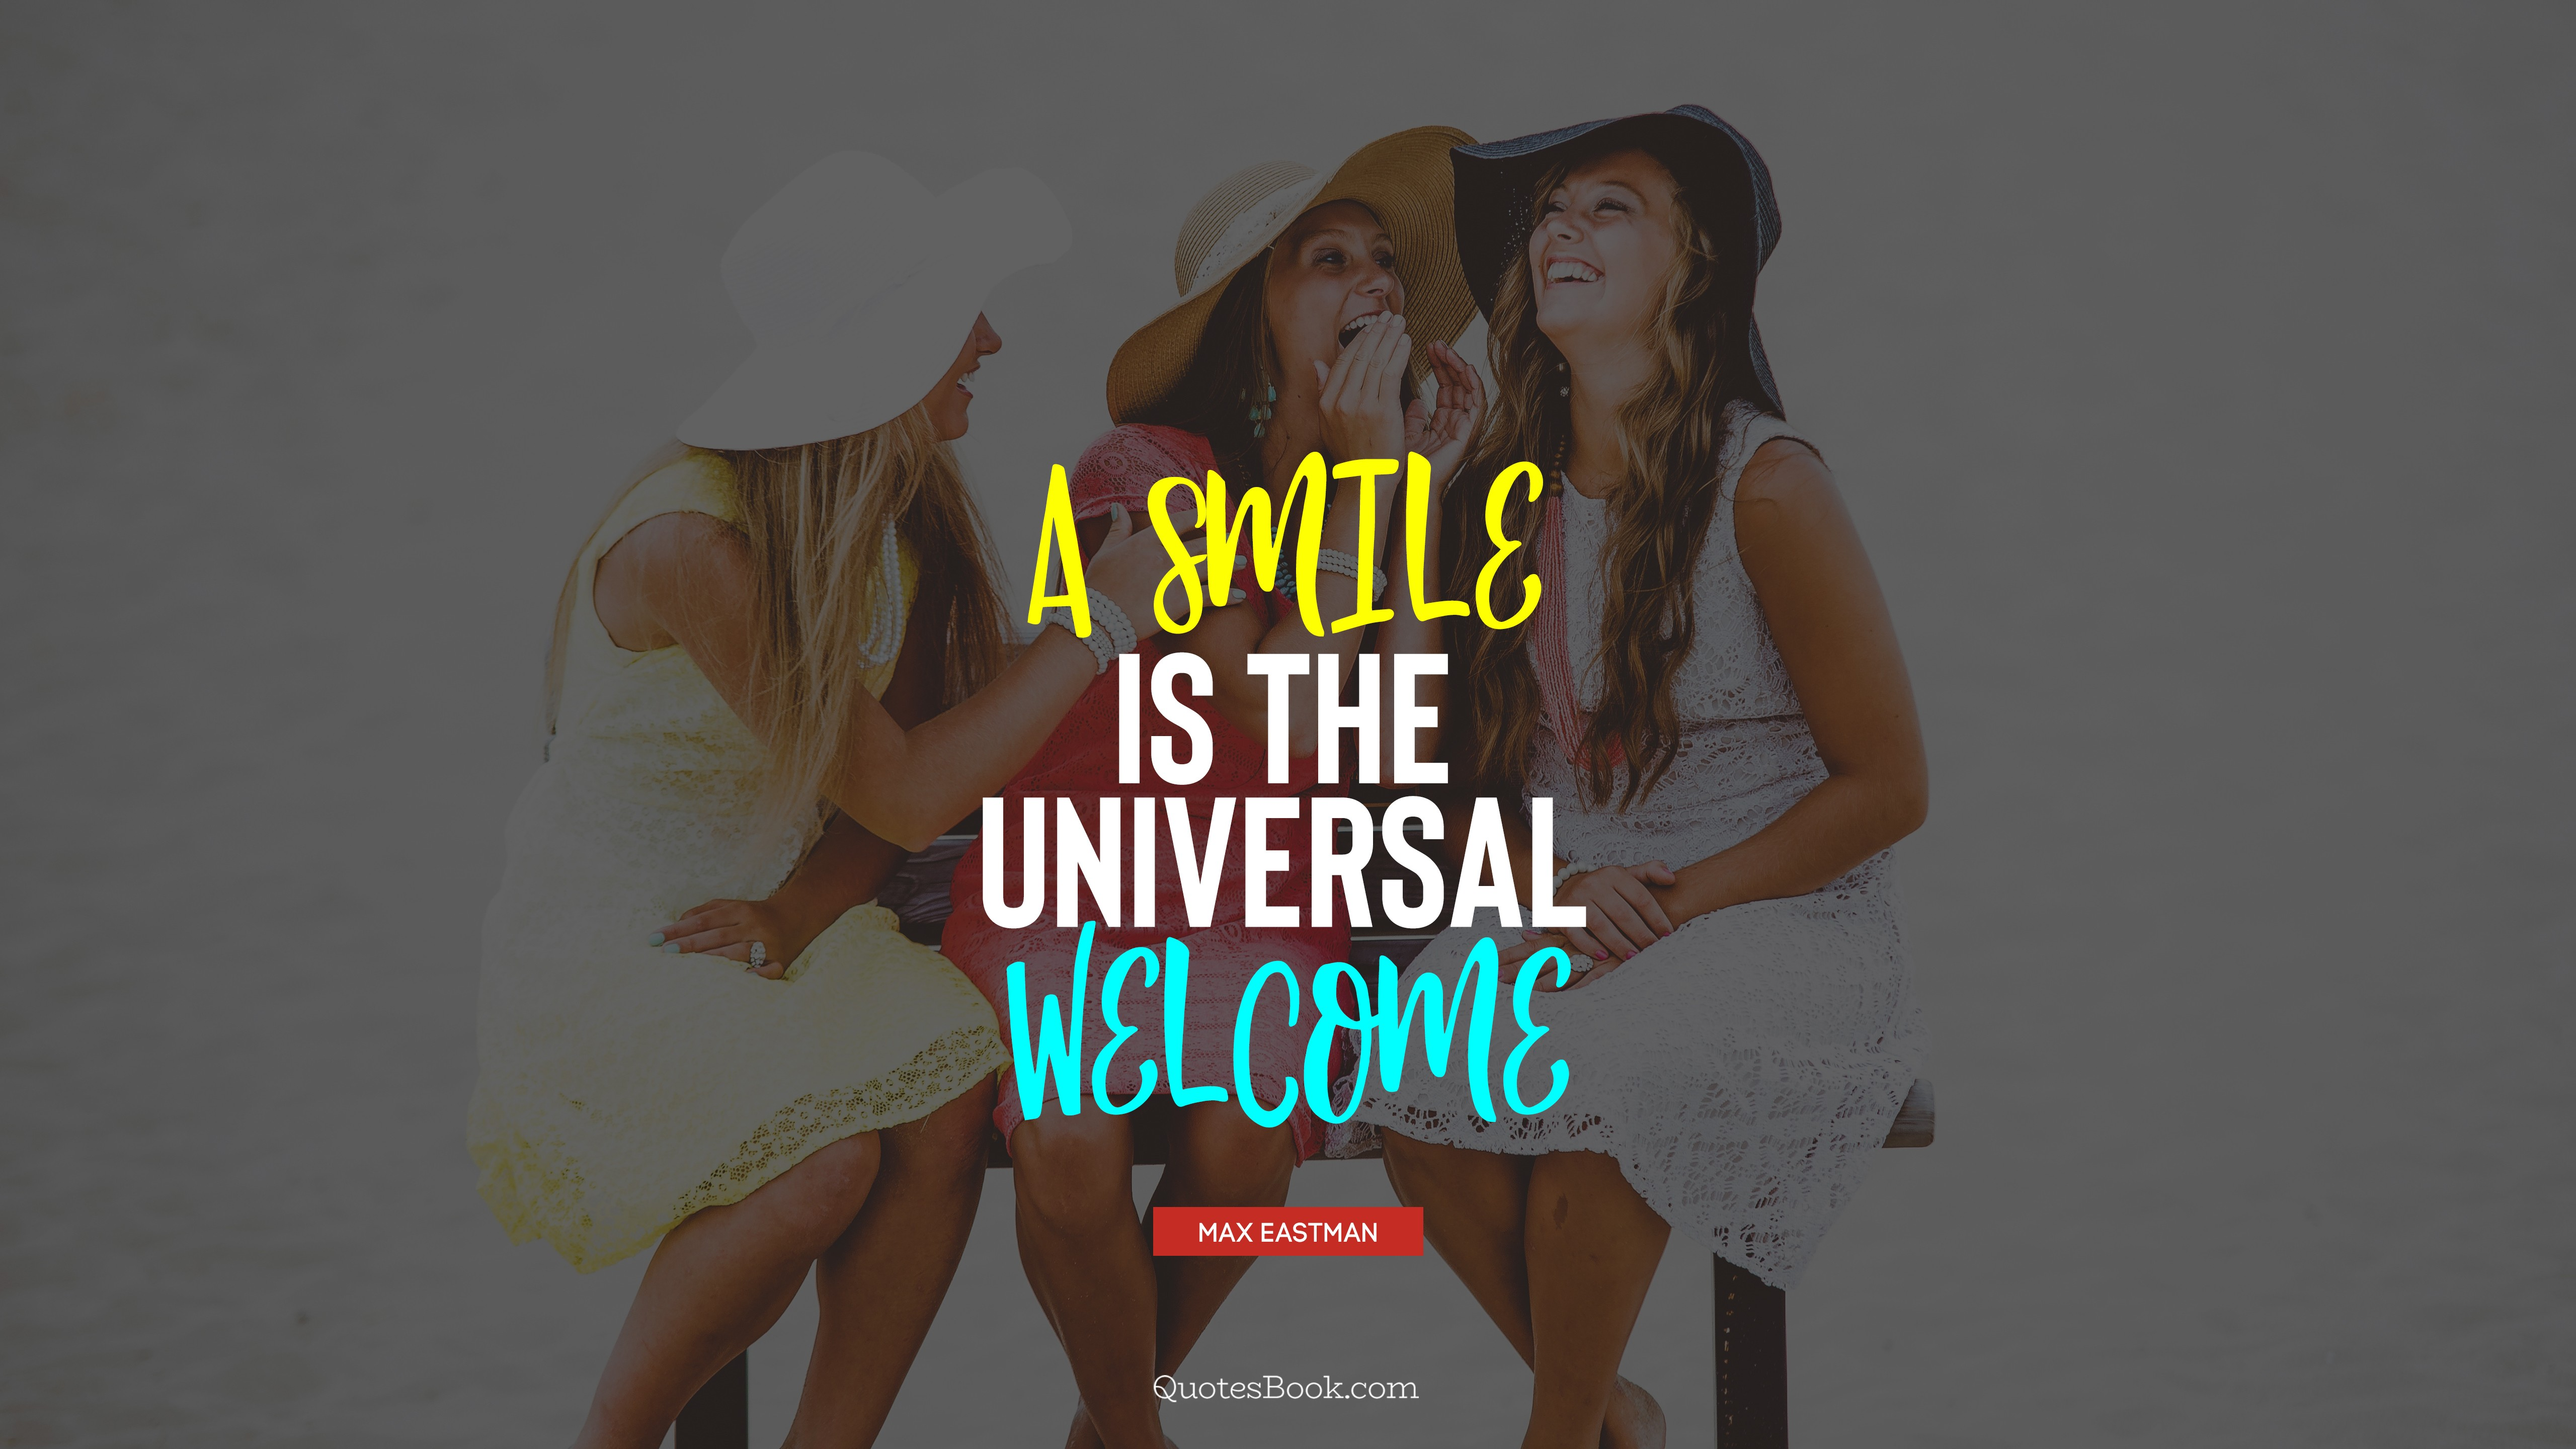 A smile is the universal welcome  - Quote by Max Eastman - QuotesBook